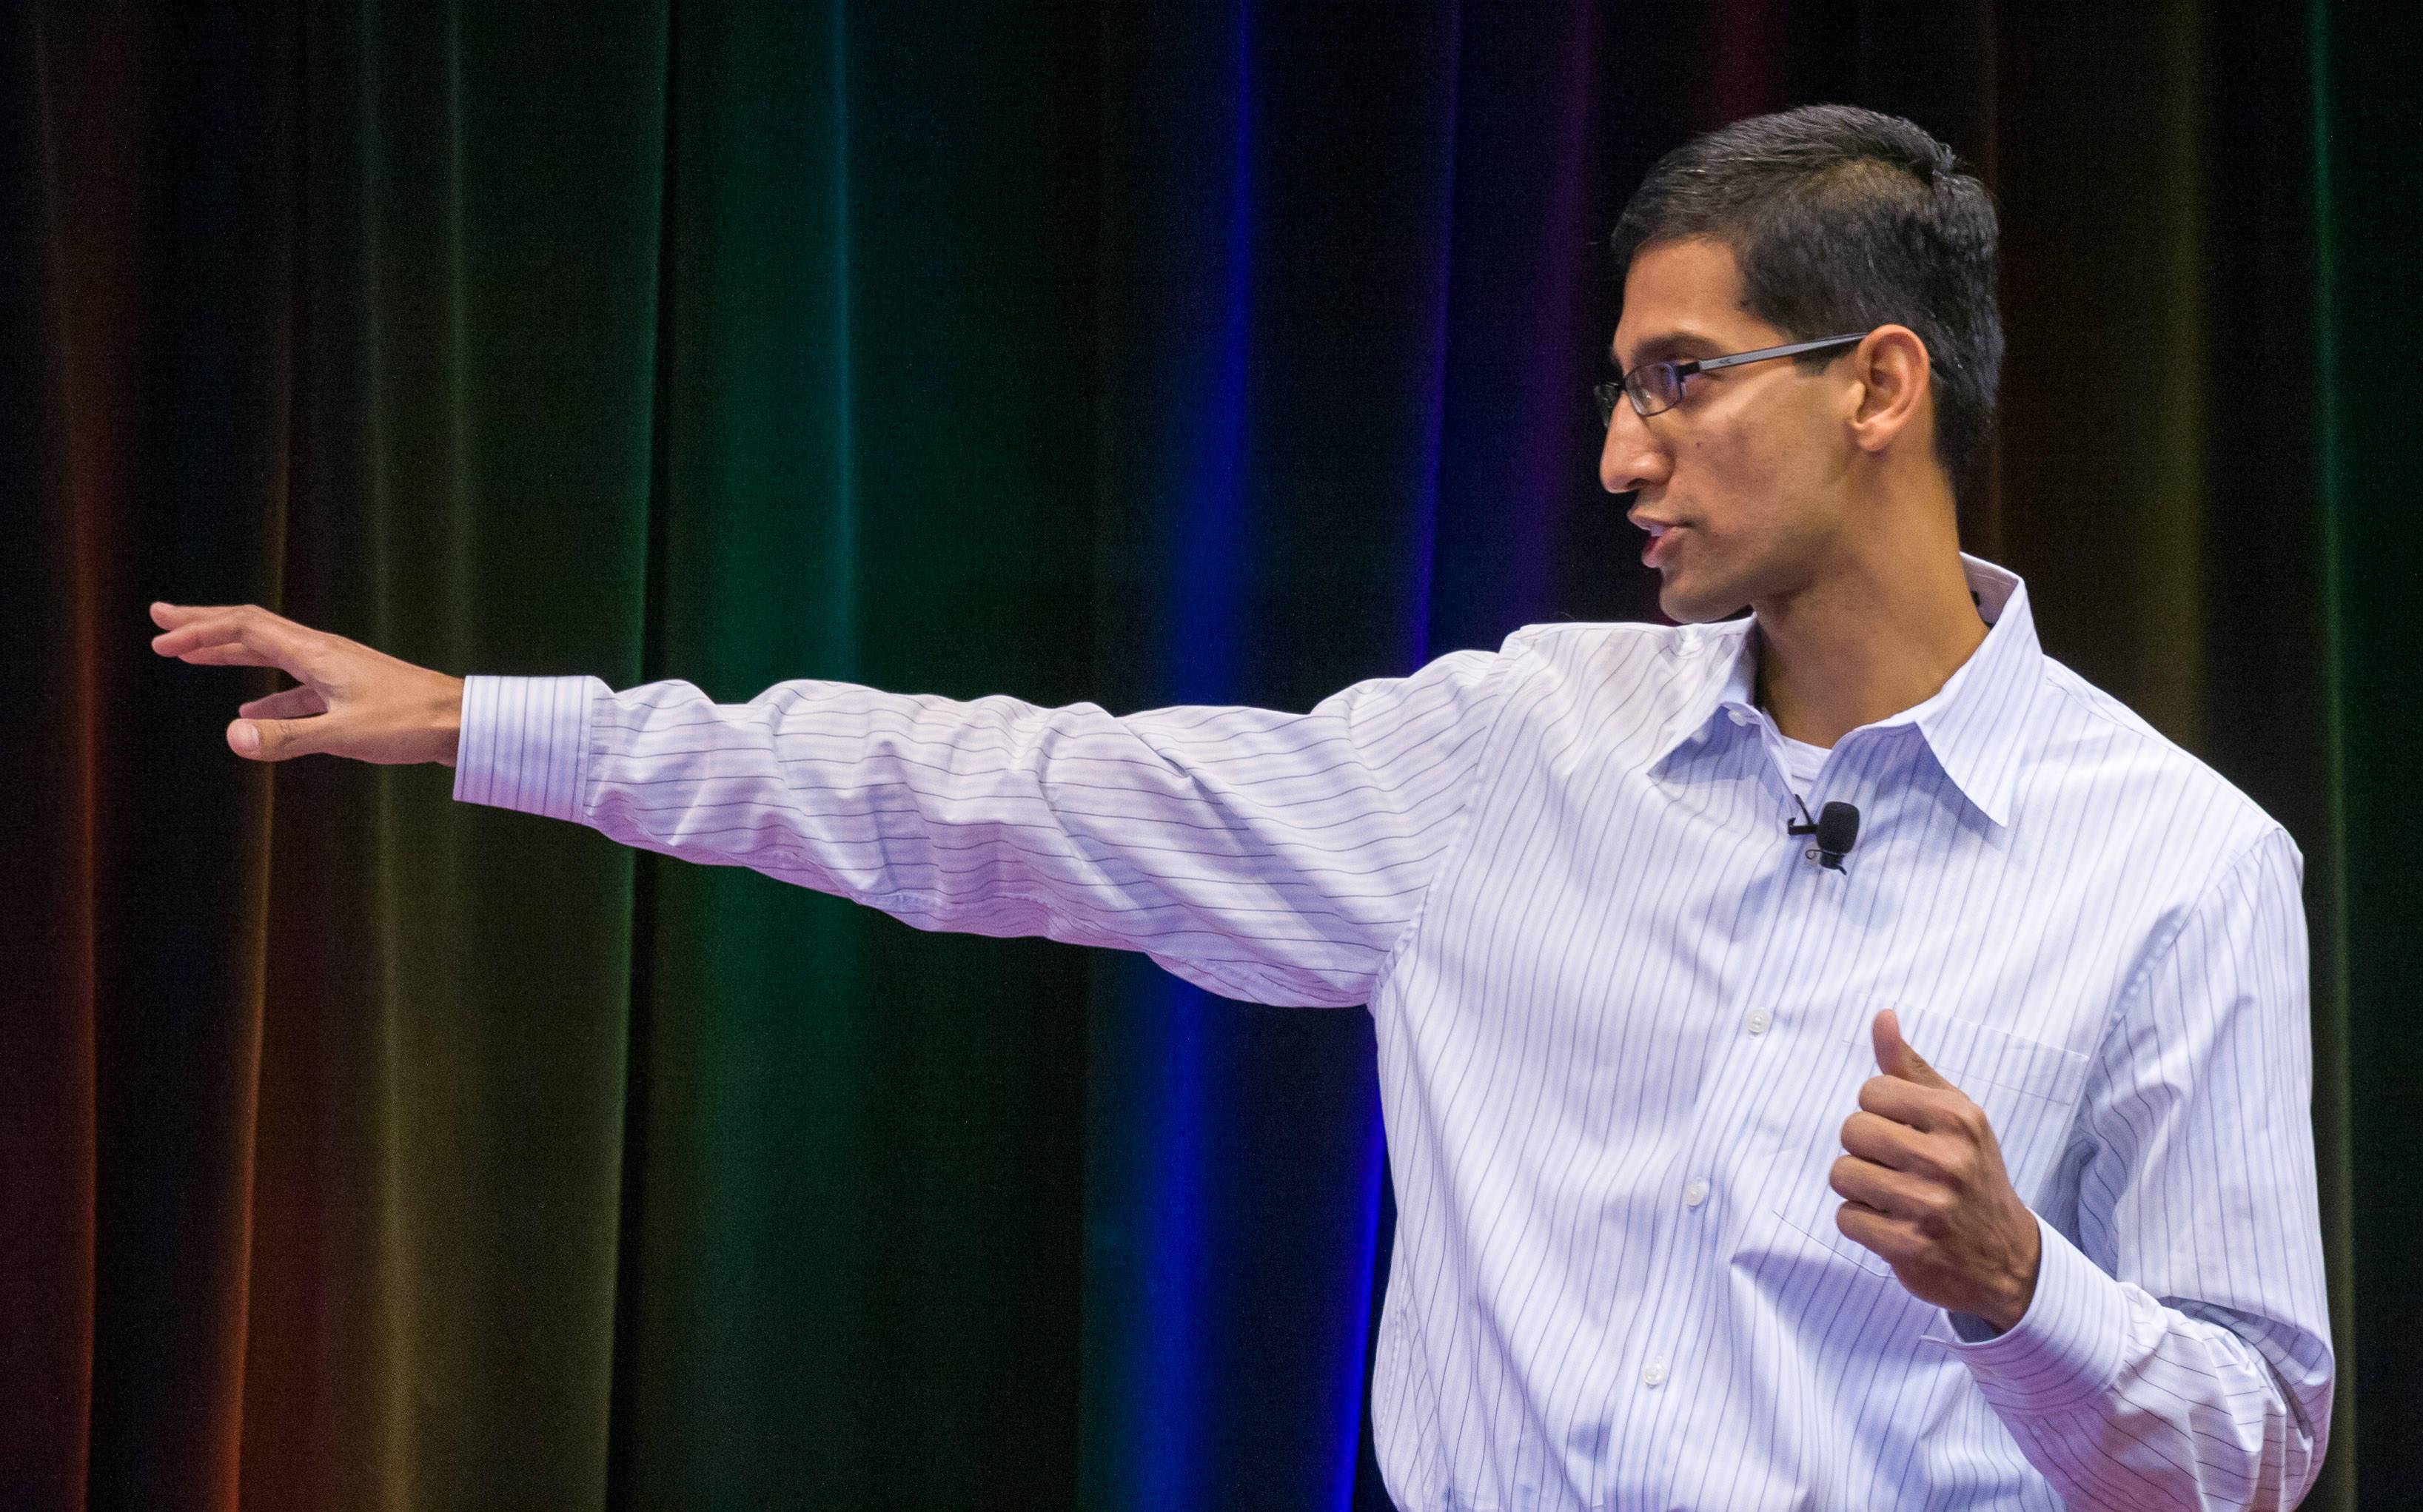 Chrome leader Sundar Pichai, promoted to vice president only three months earlier, debuts Chrome on September 2, 2008. He rose to become Google CEO in 2015.